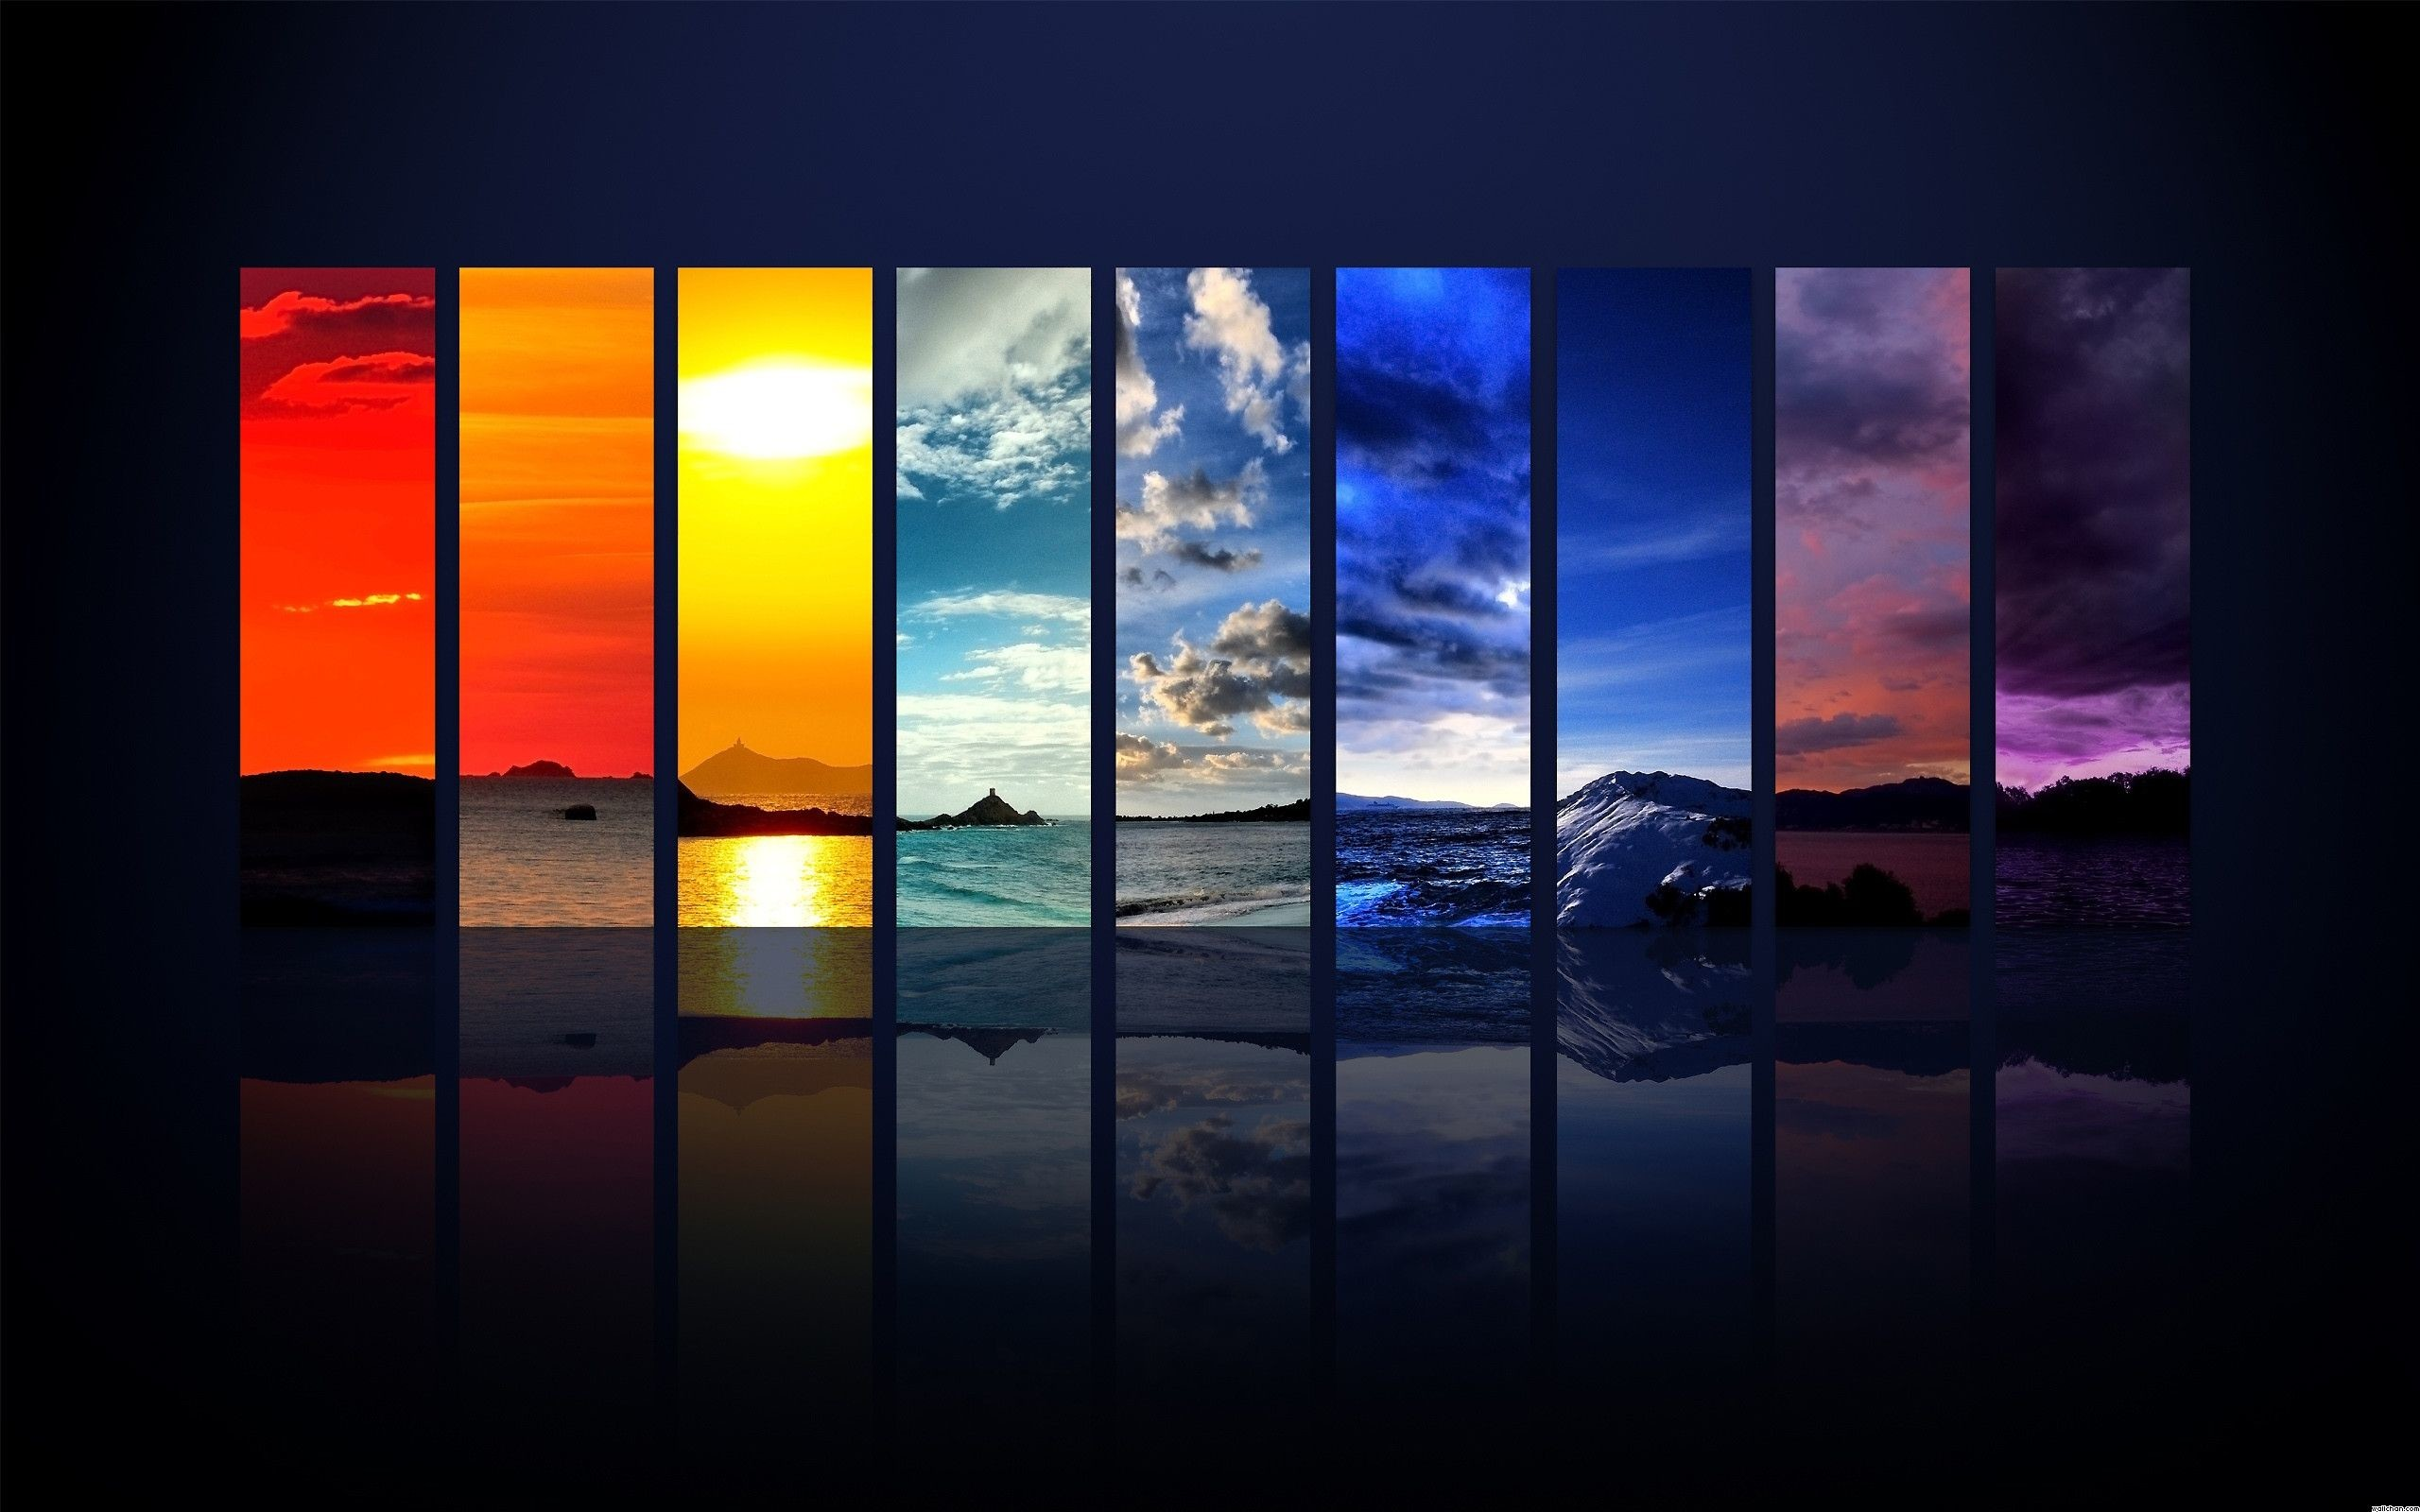 Breathtaking Abstract Rainbow Wallpapers | HD Wallpapers | Pinterest | Rainbow  wallpaper and Wallpaper